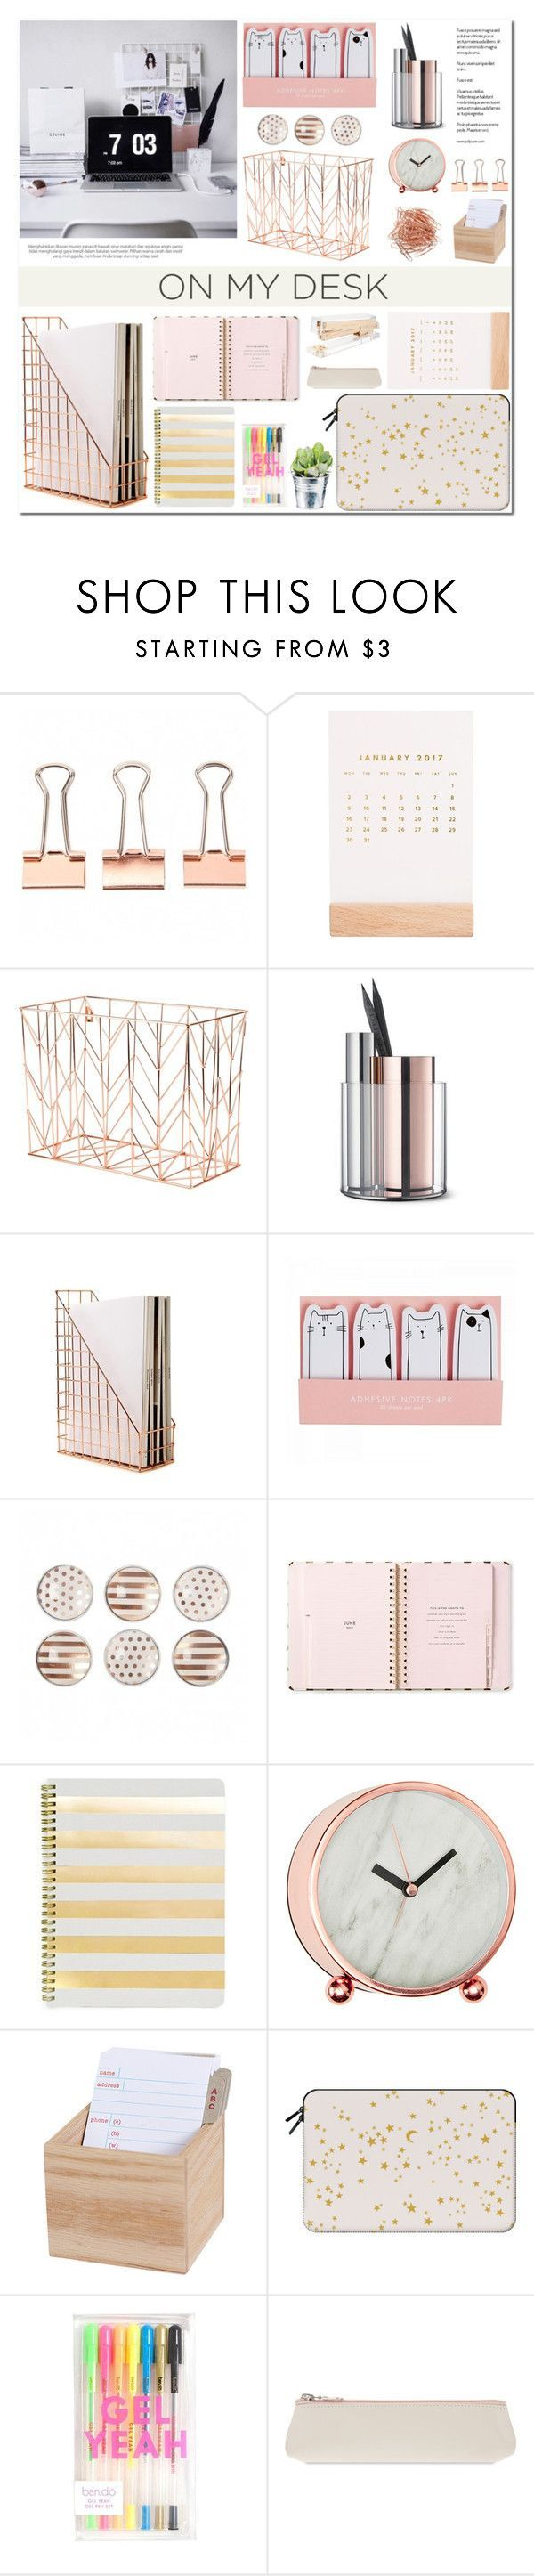 """""""On My Desk"""" by makeupgoddess on Polyvore featuring interior, interiors, interior design, home, home decor, interior decorating, Thrive, U Brands, Kate Spade and Beyond Object"""